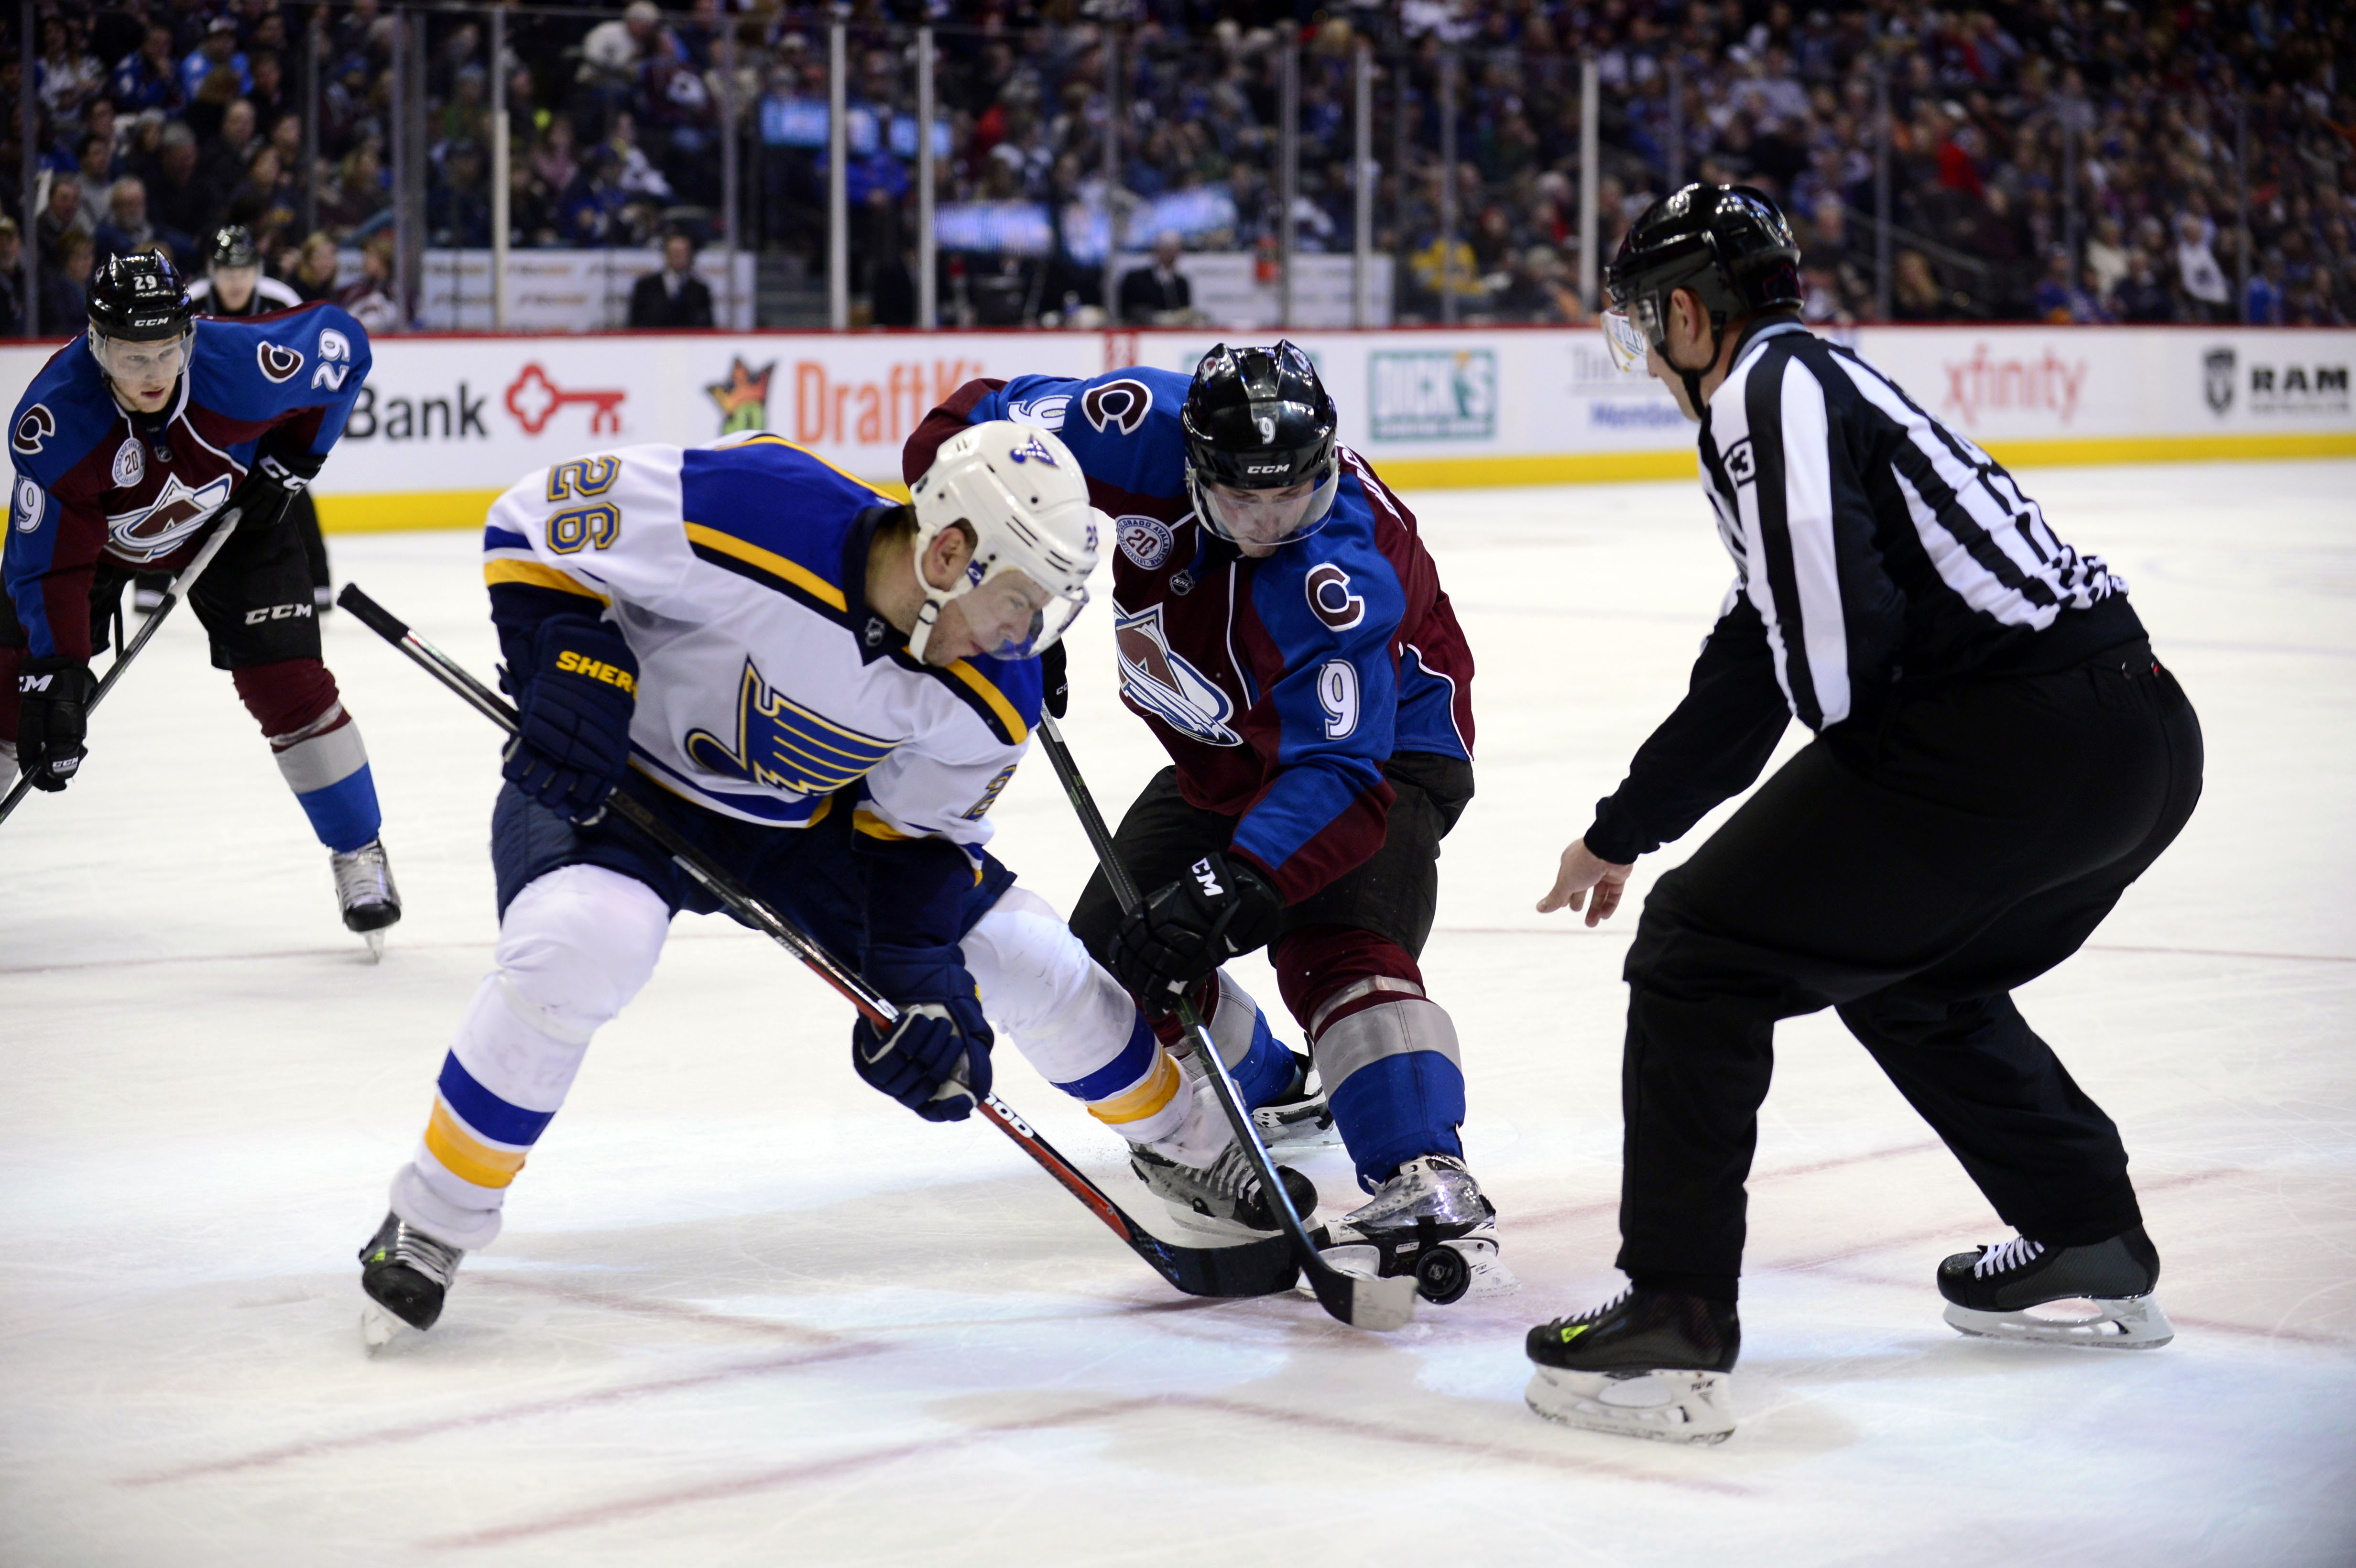 9071975-nhl-st.-louis-blues-at-colorado-avalanche